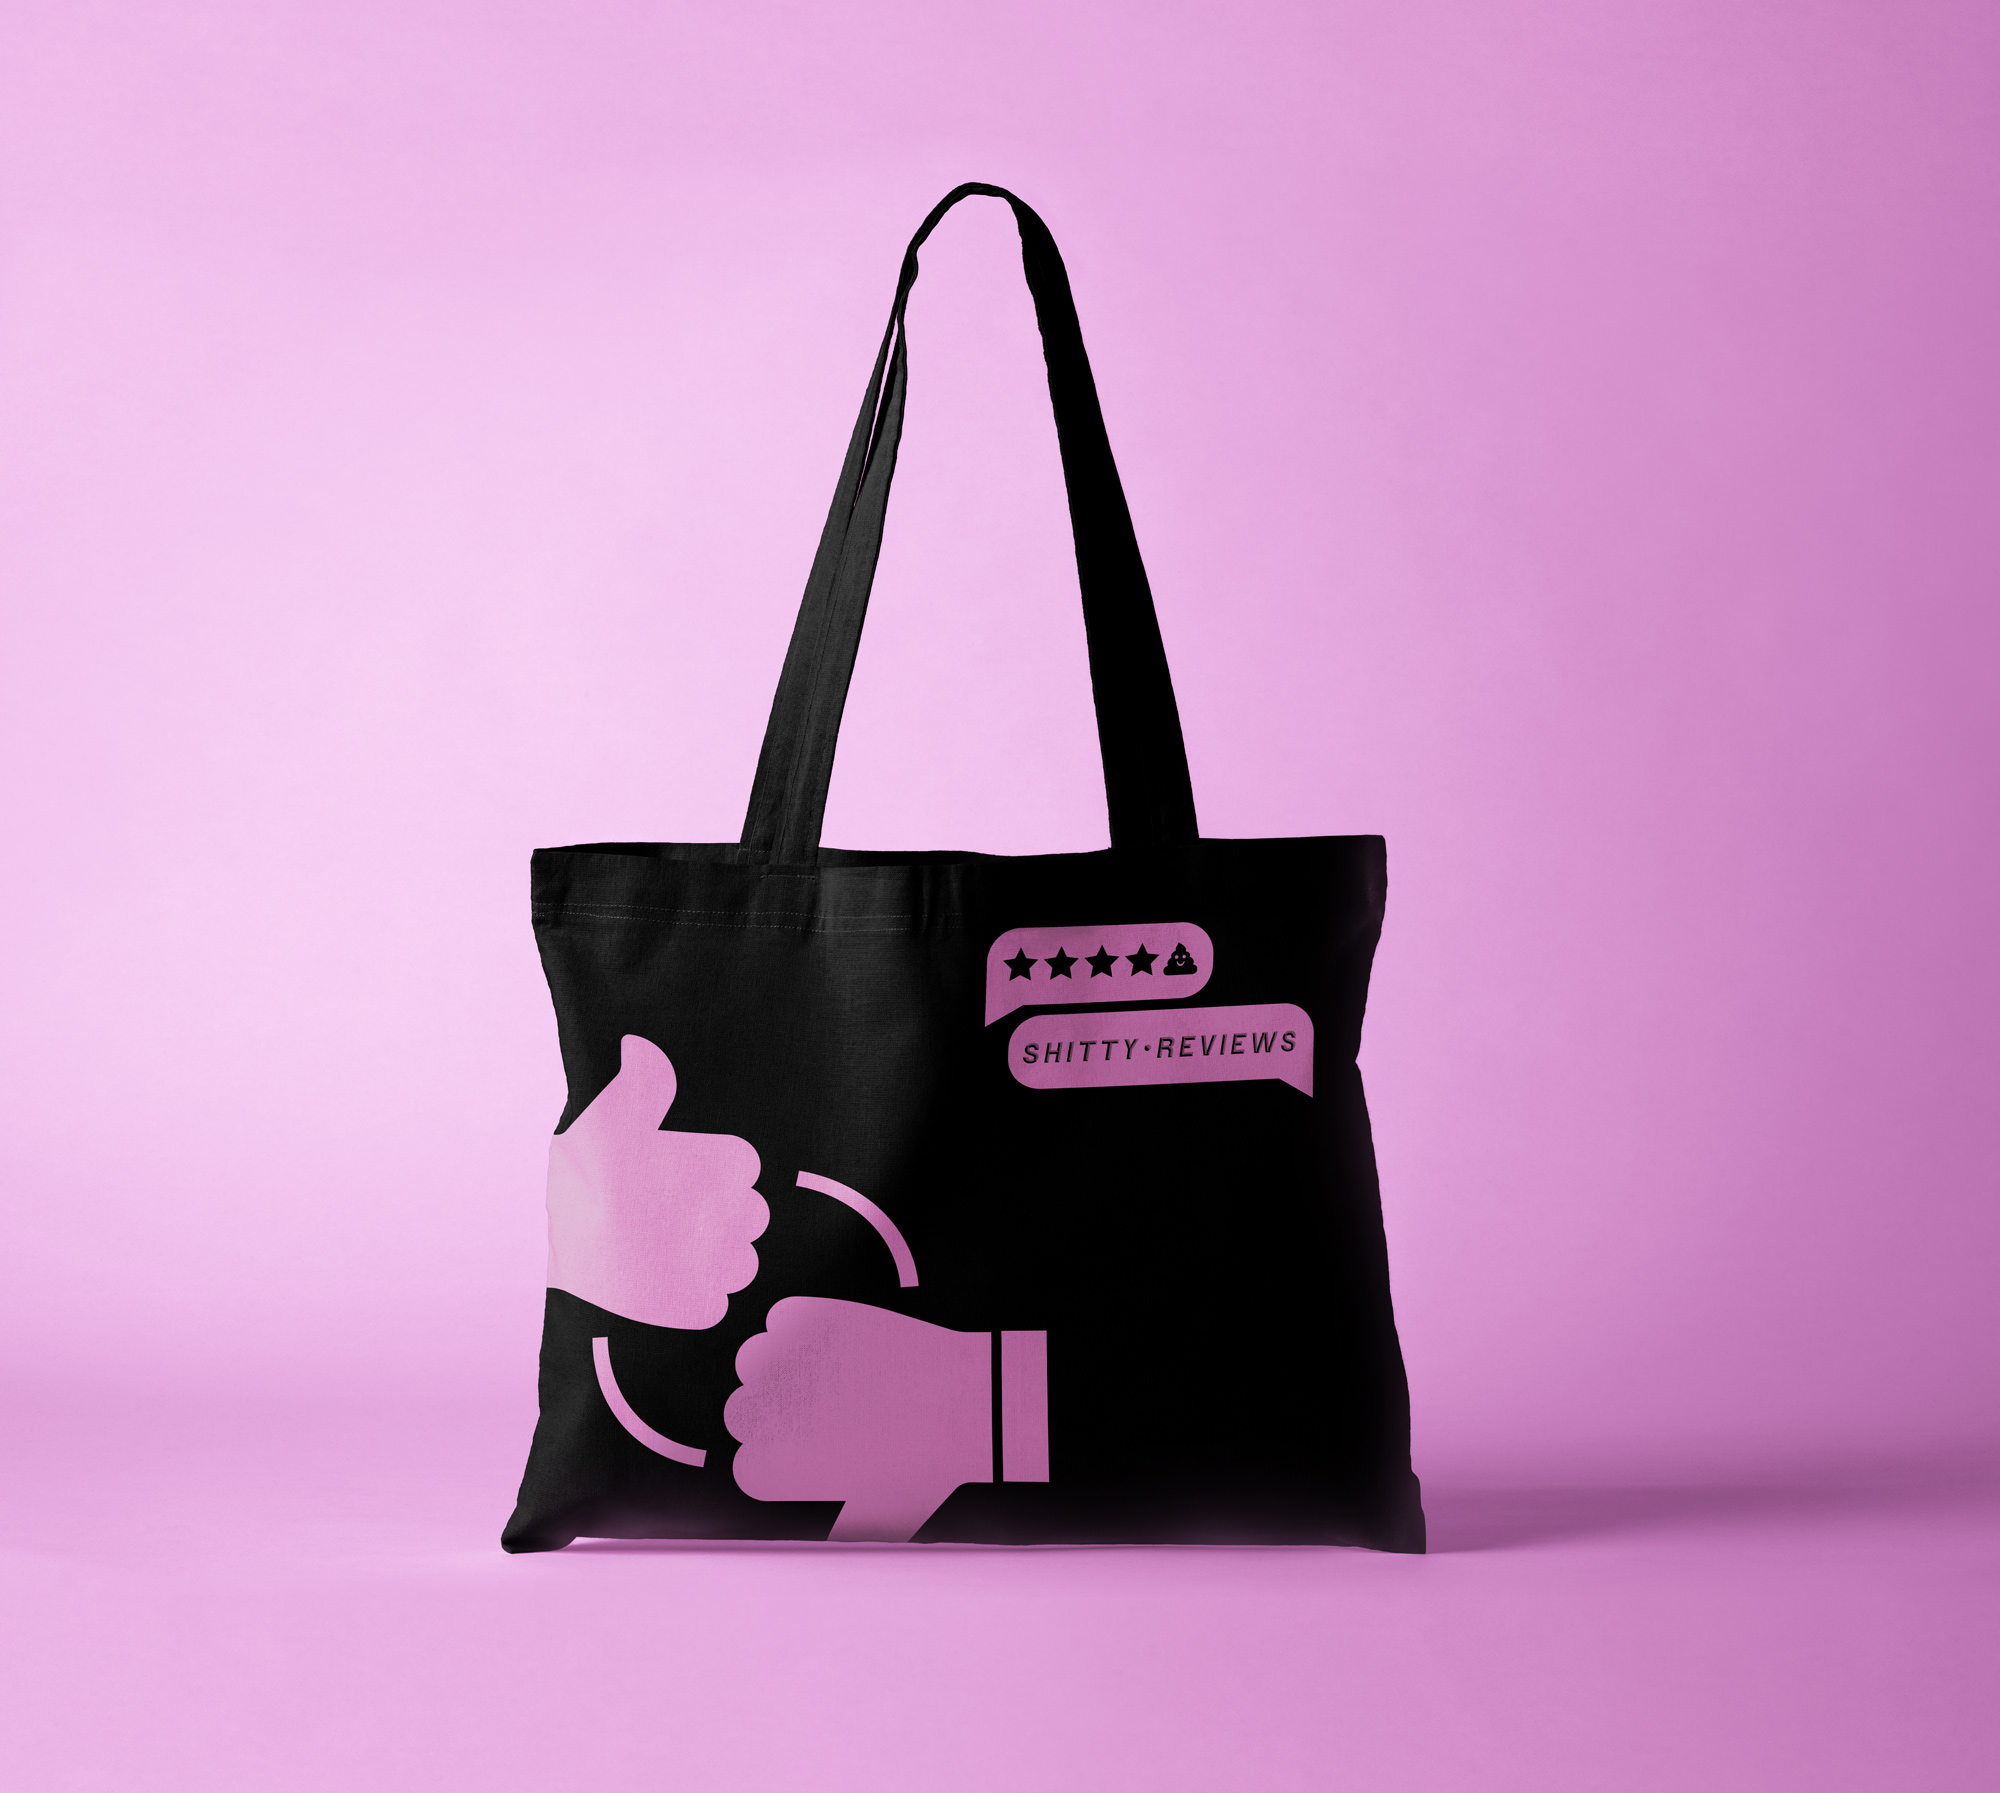 Tote-Bag-Fabric-Mockup-Vol4.jpg